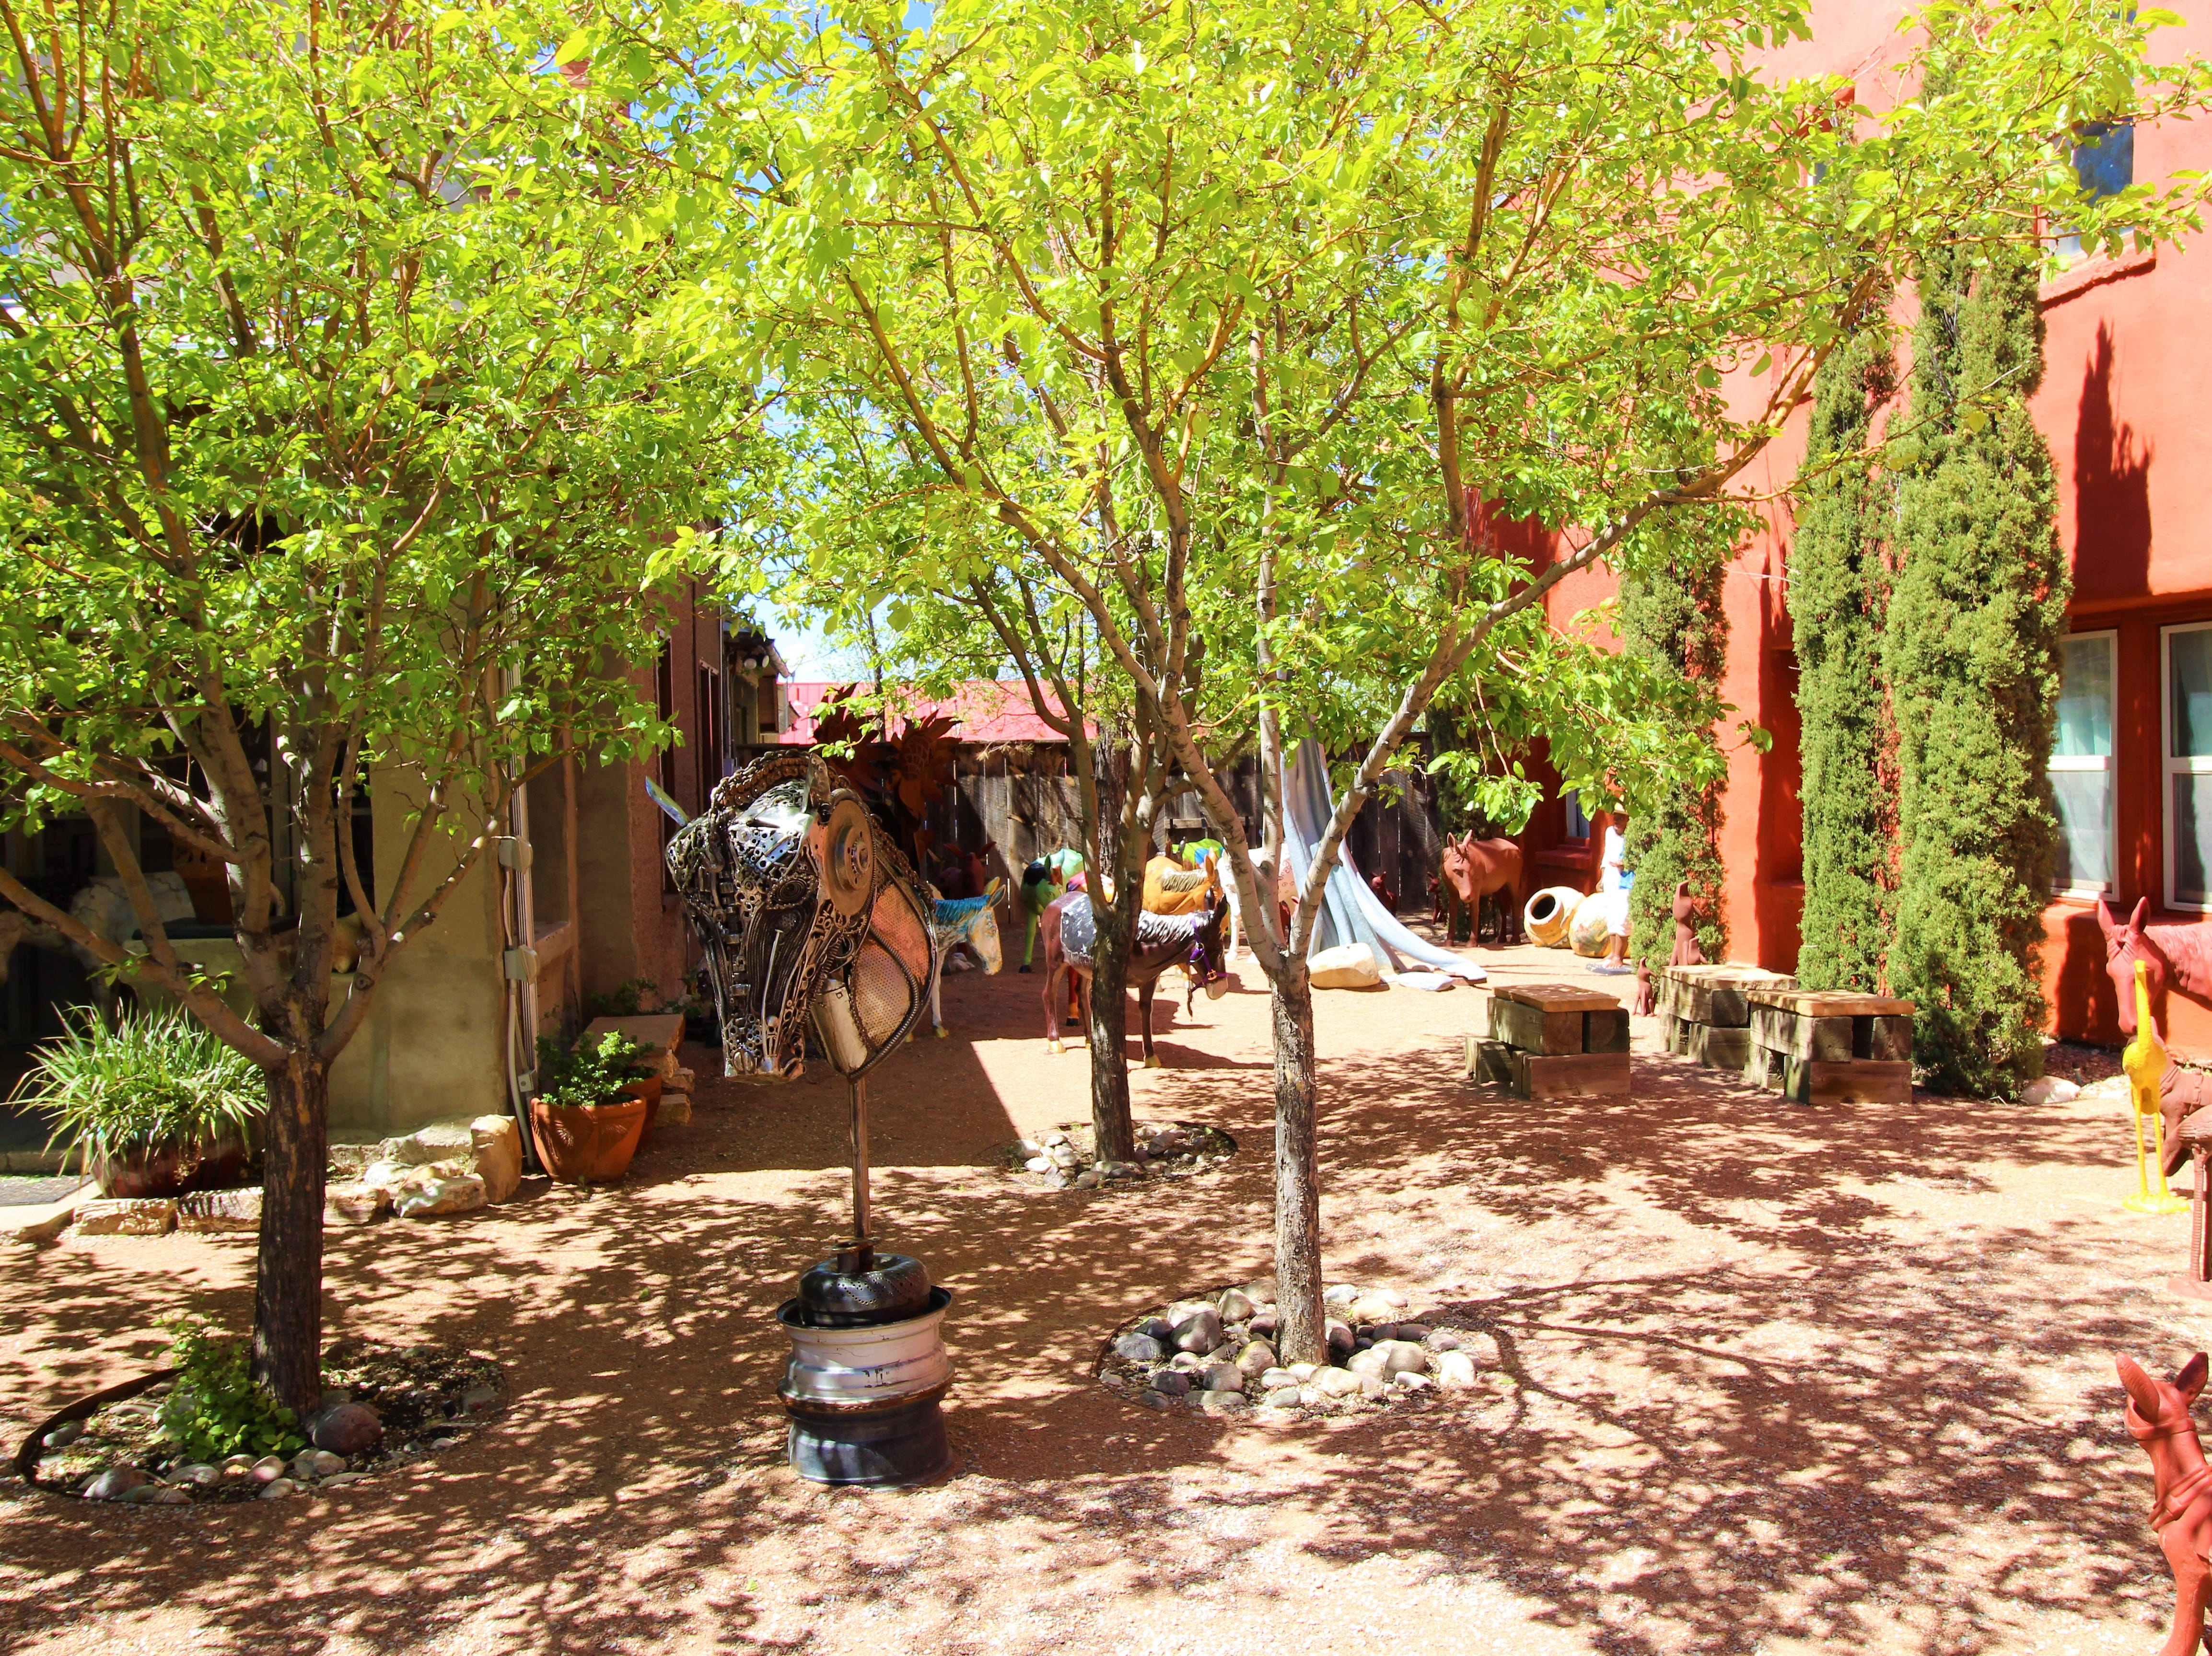 A sculpture Garden in the Art District of Carrizozo adds color and creation  to 12th street.